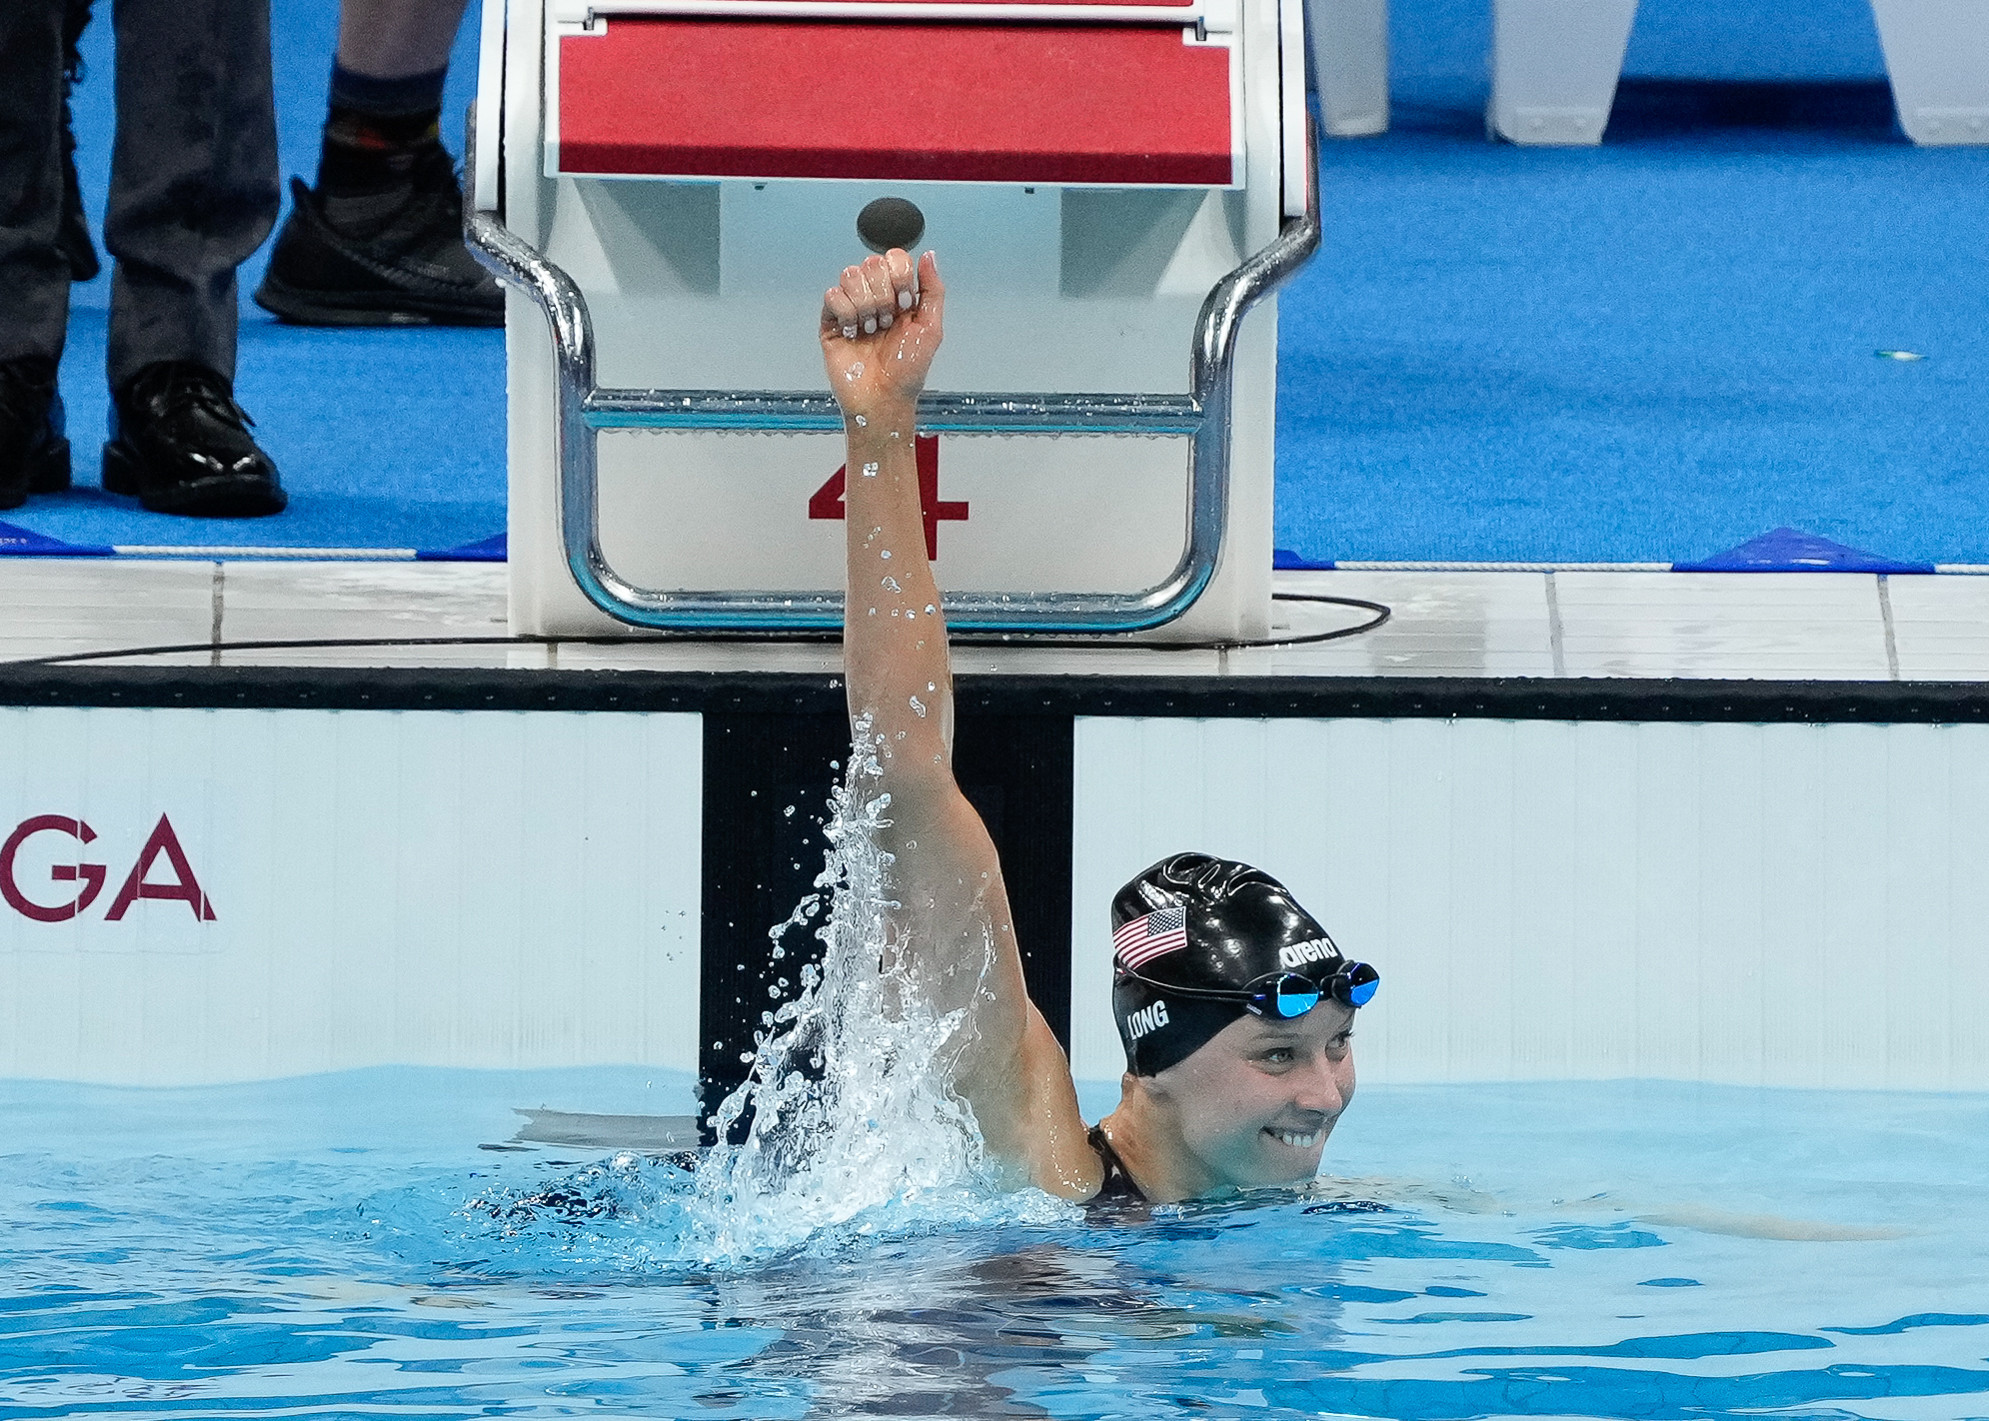 Long wins 16th Paralympic gold medal as swimming action concludes at Tokyo 2020